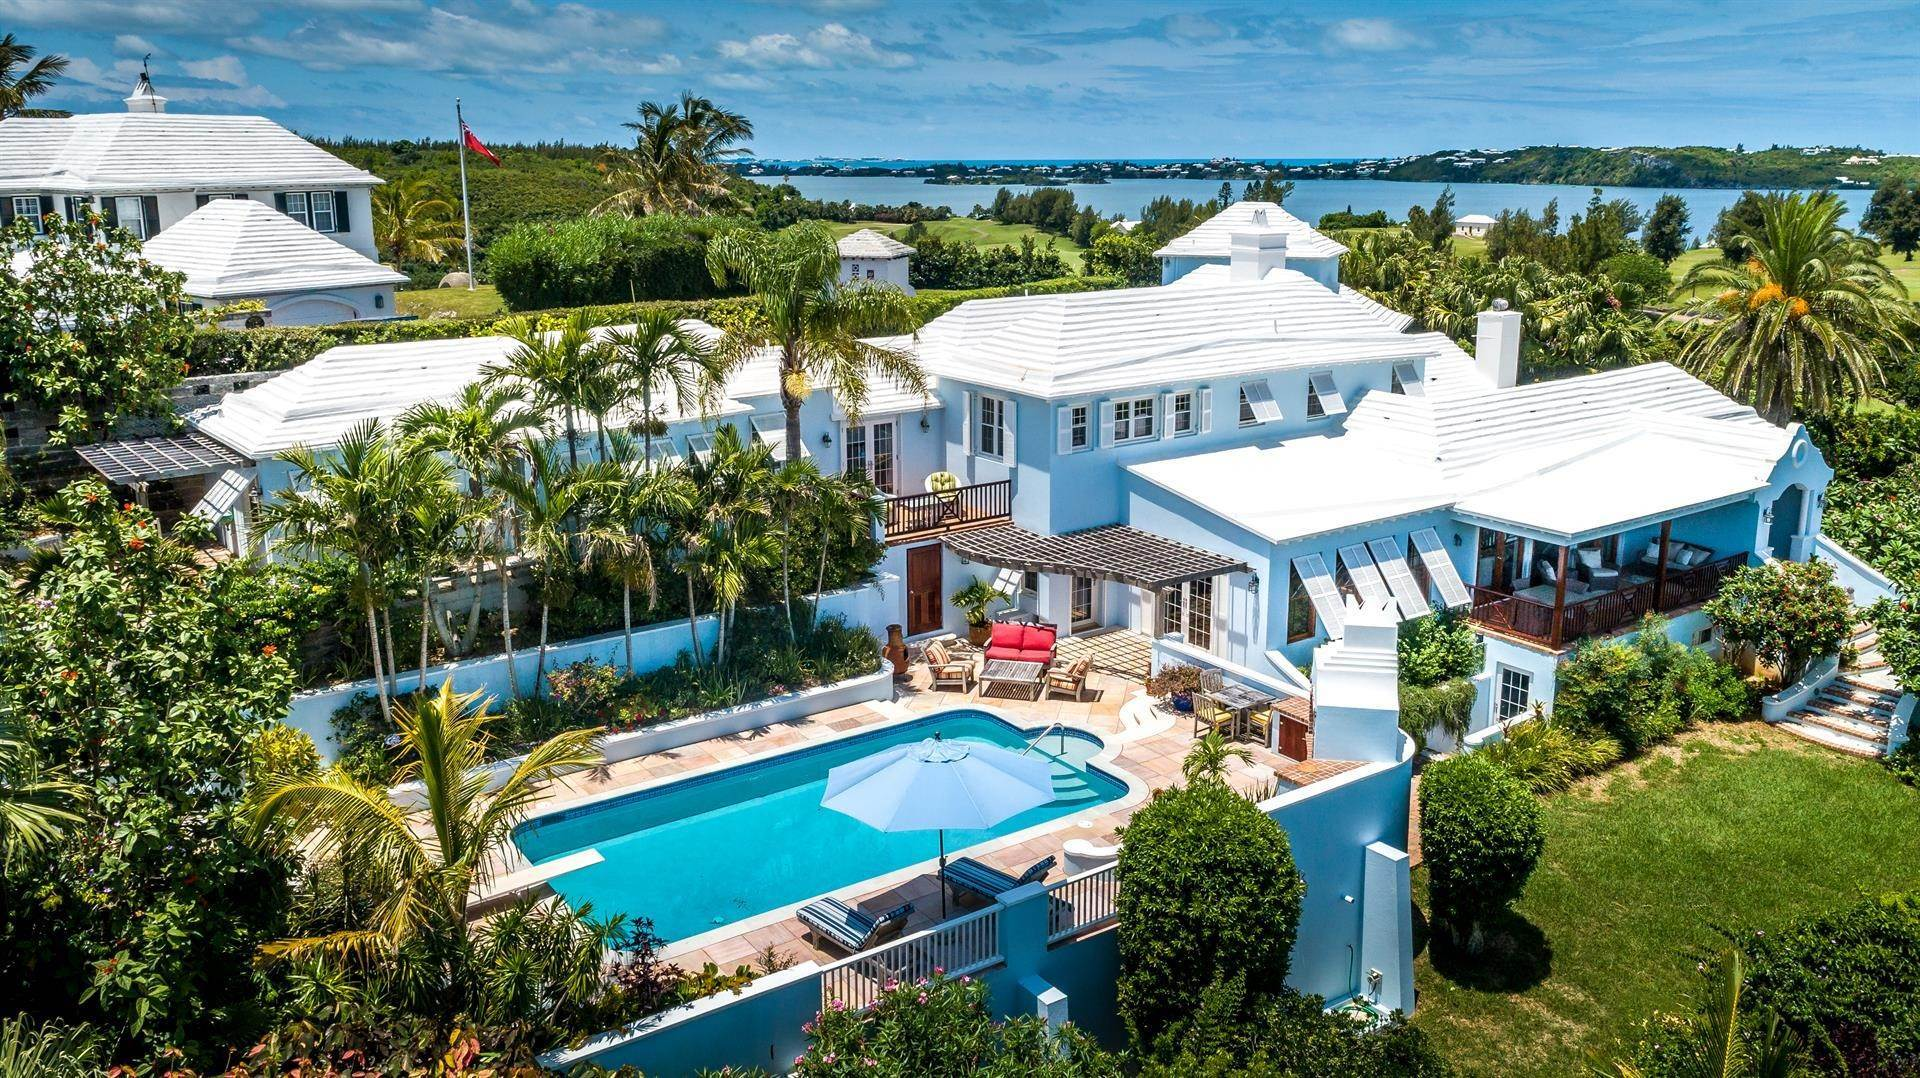 Single Family Homes for Sale at Tobermory In Tucker's Town Tobermory In Tucker's Town, ,Bermuda – Sinclair Realty